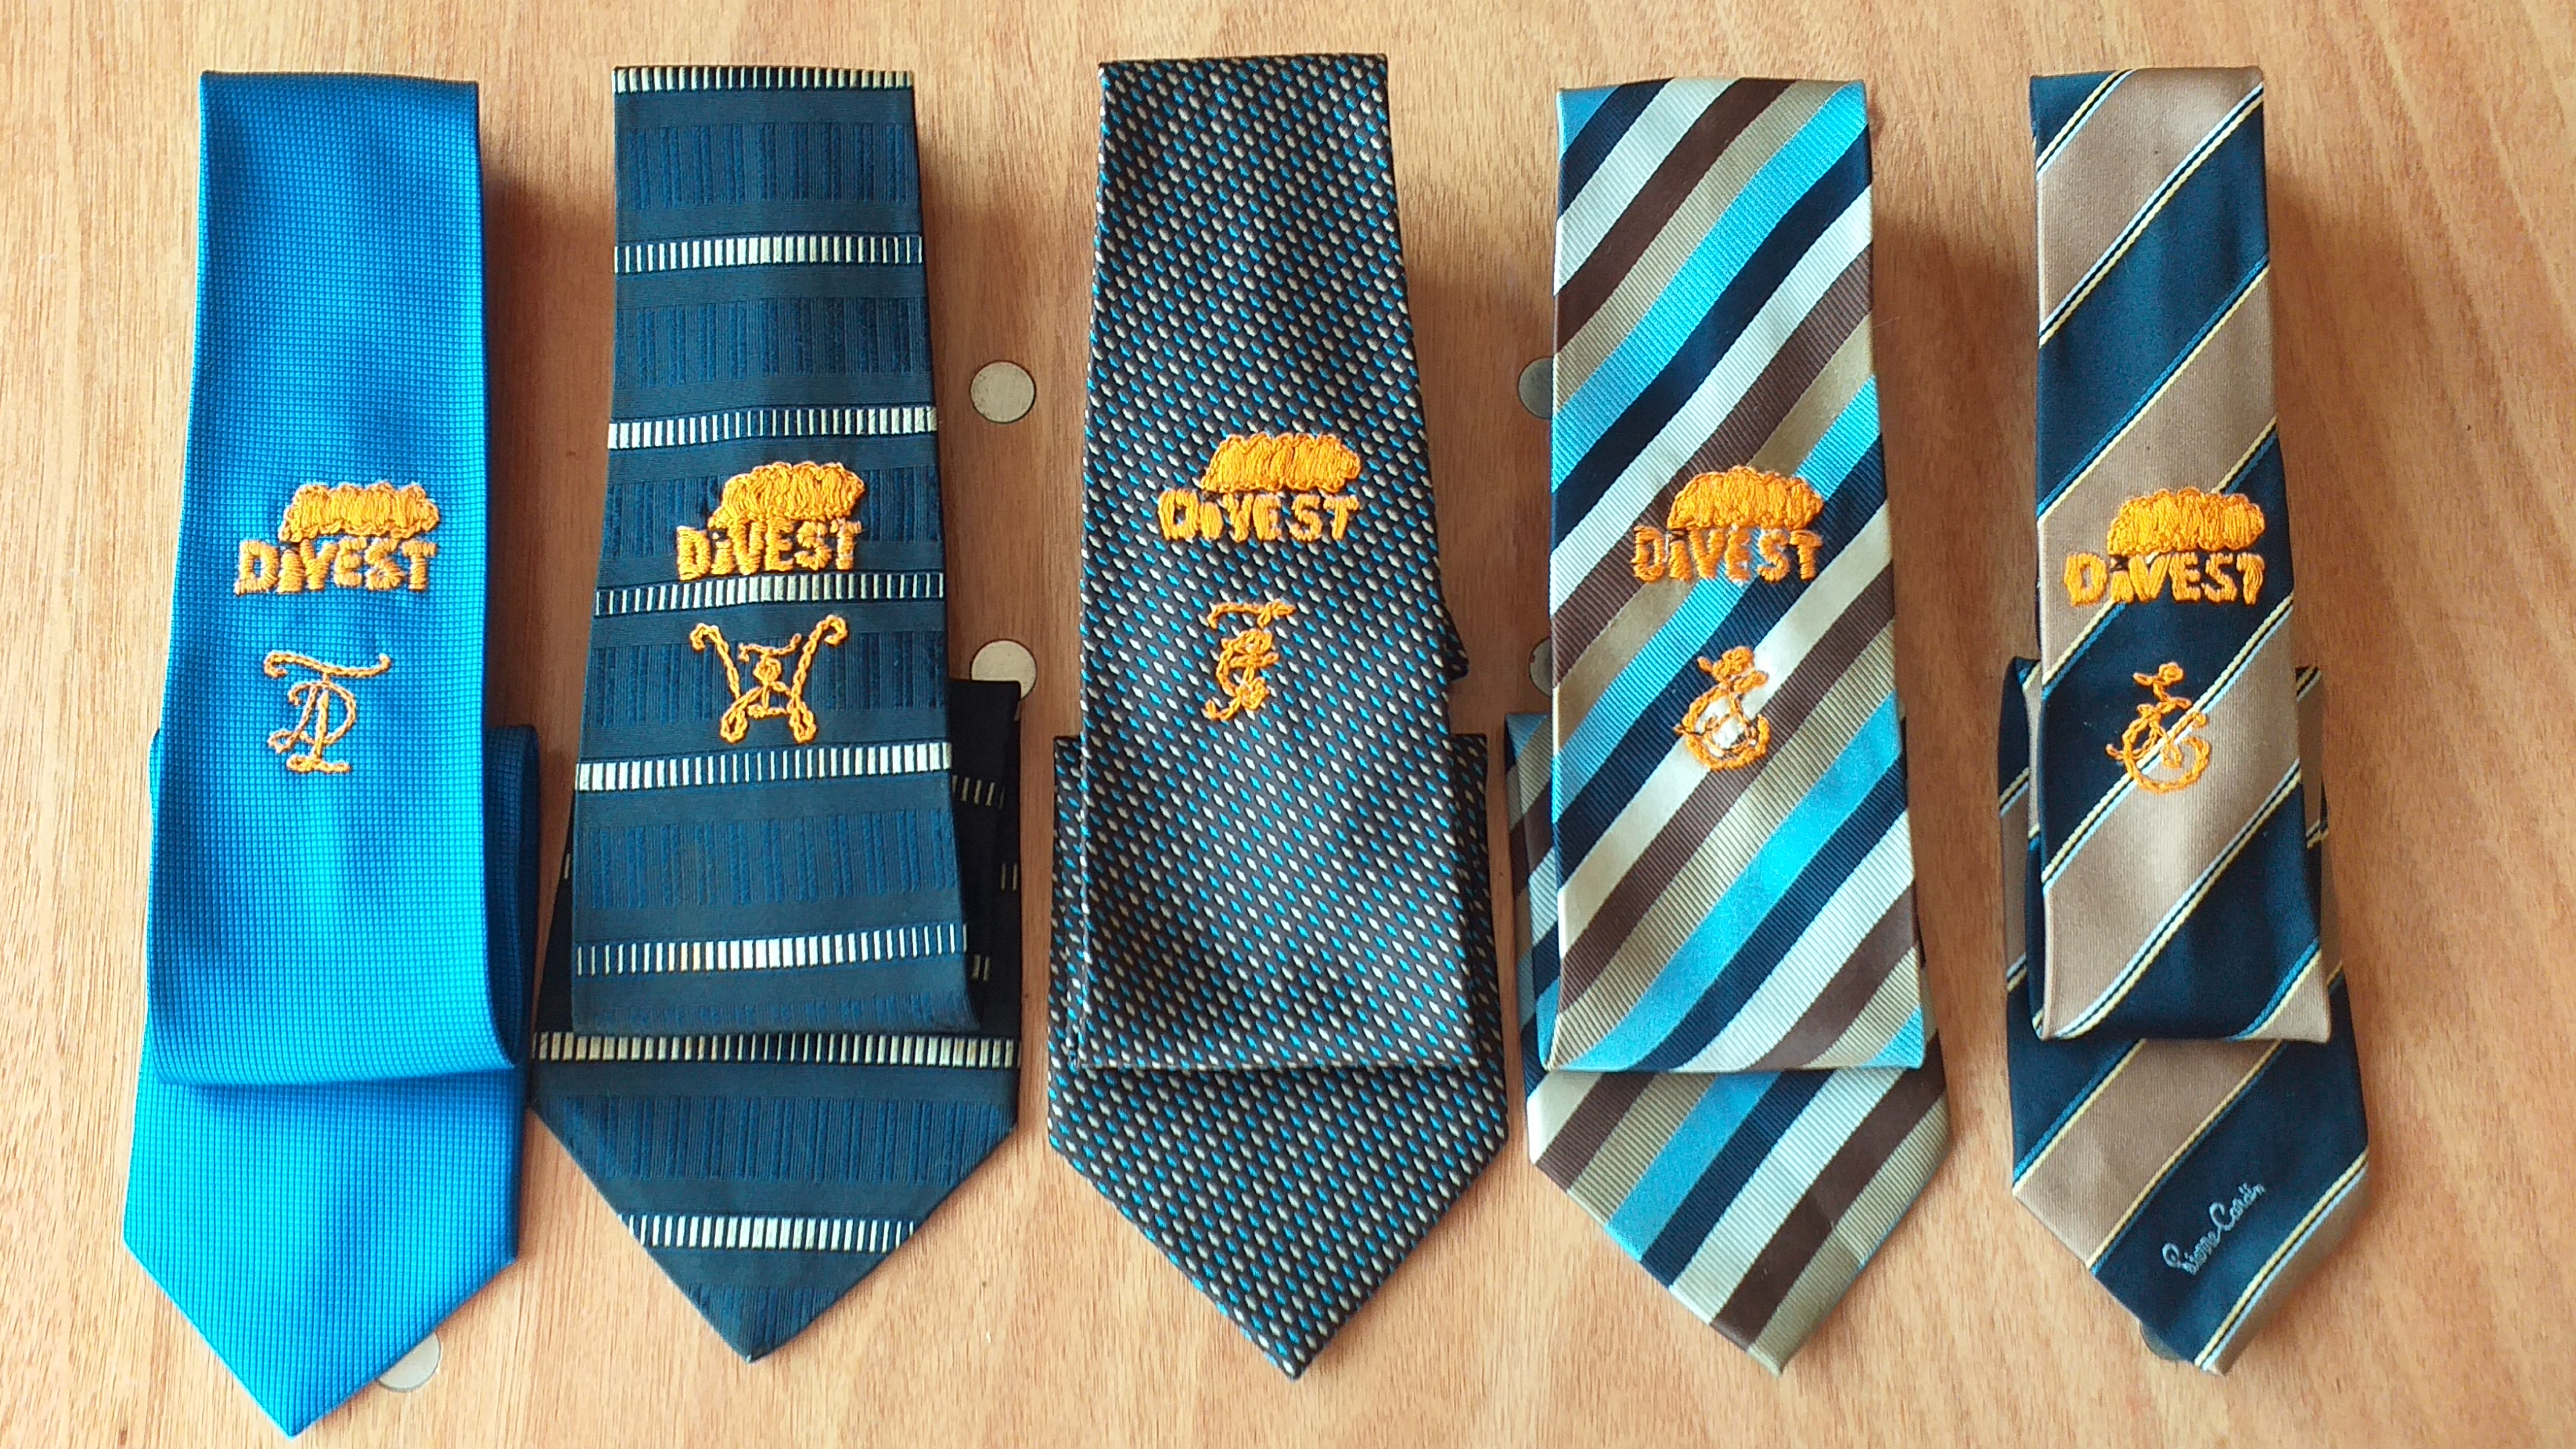 Hand-embroidered ties deliver climate message to councillors